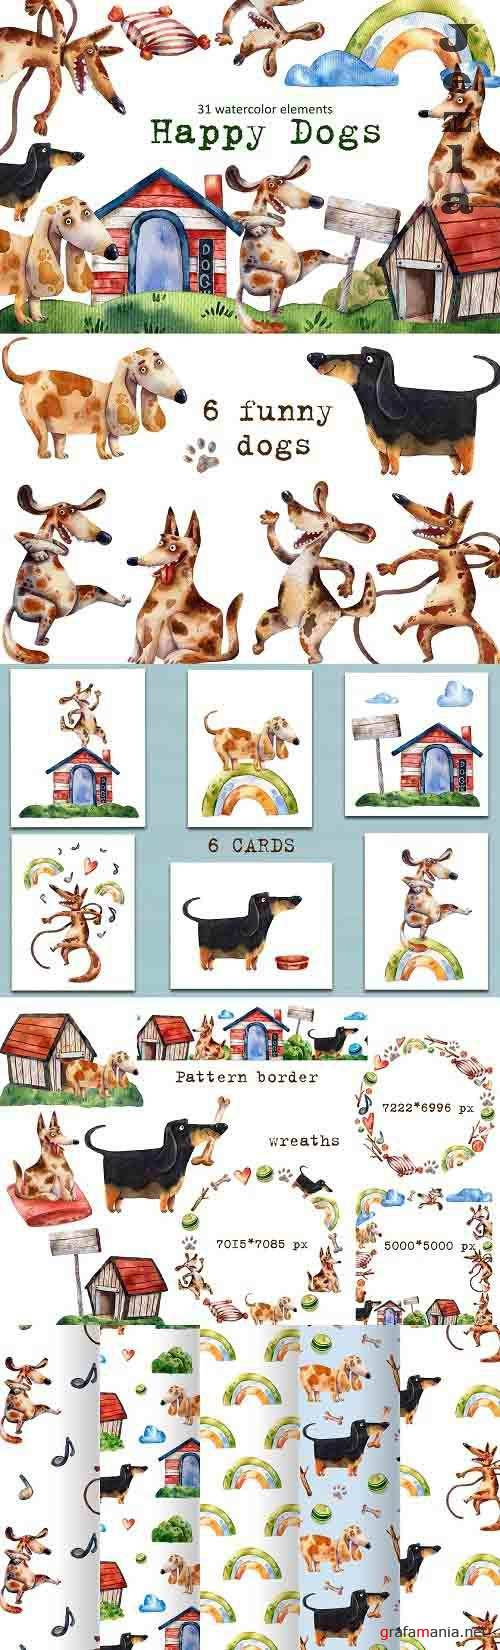 Happy Dogs - Watercolor Clip Art Set - 5853753